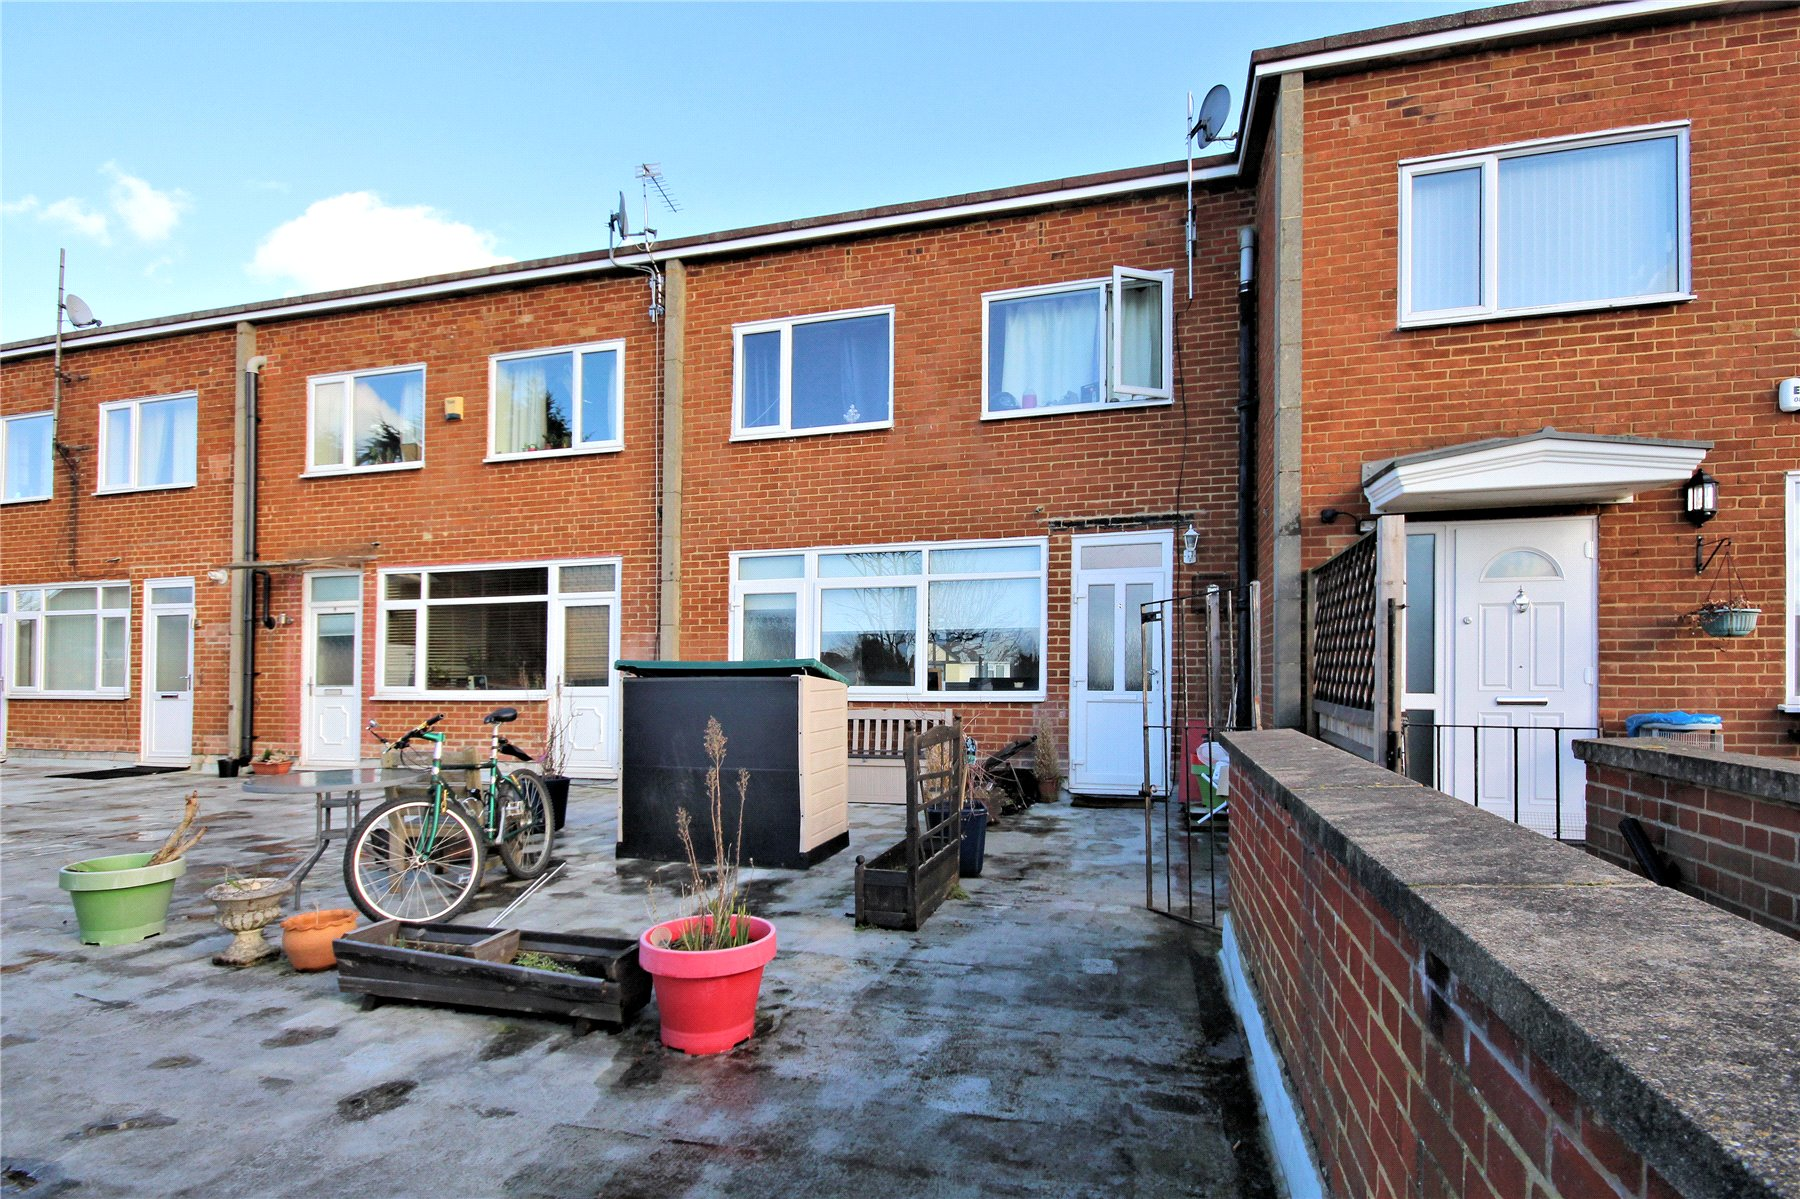 3 Bedrooms Maisonette Flat for sale in Ashcombe Parade, Old Woking, Surrey, GU22